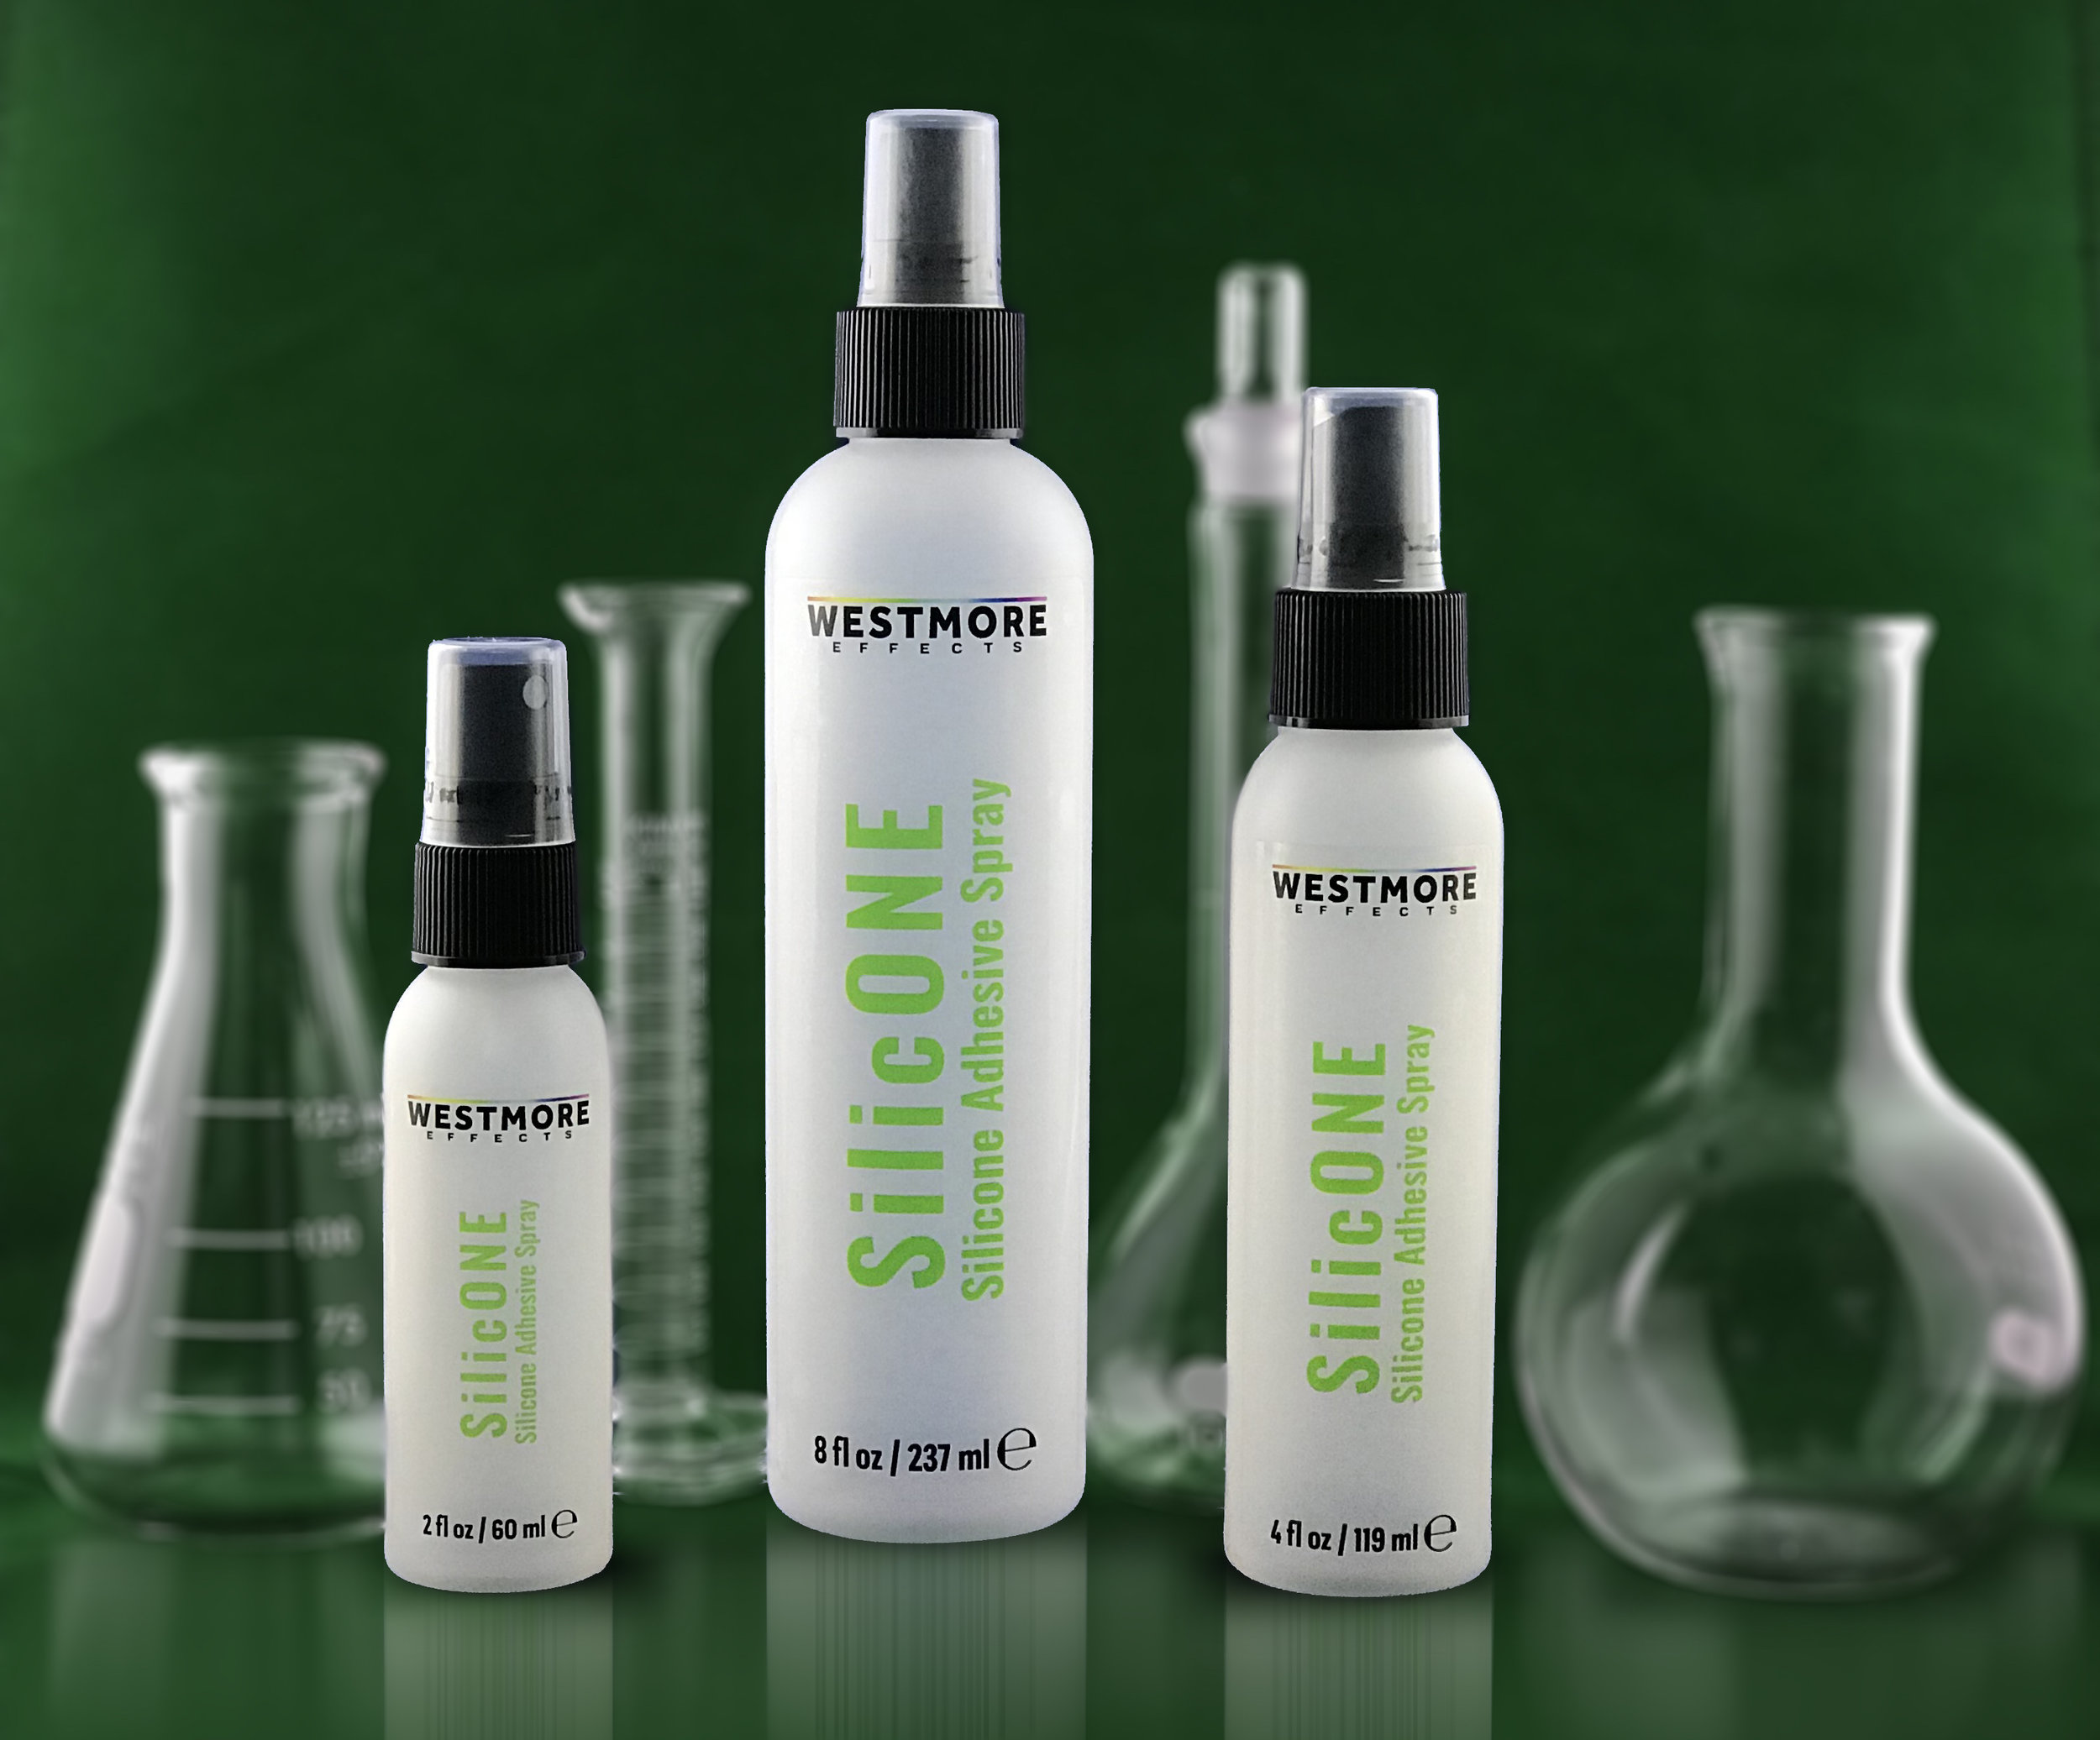 Westmore Effects SilicONE Spray